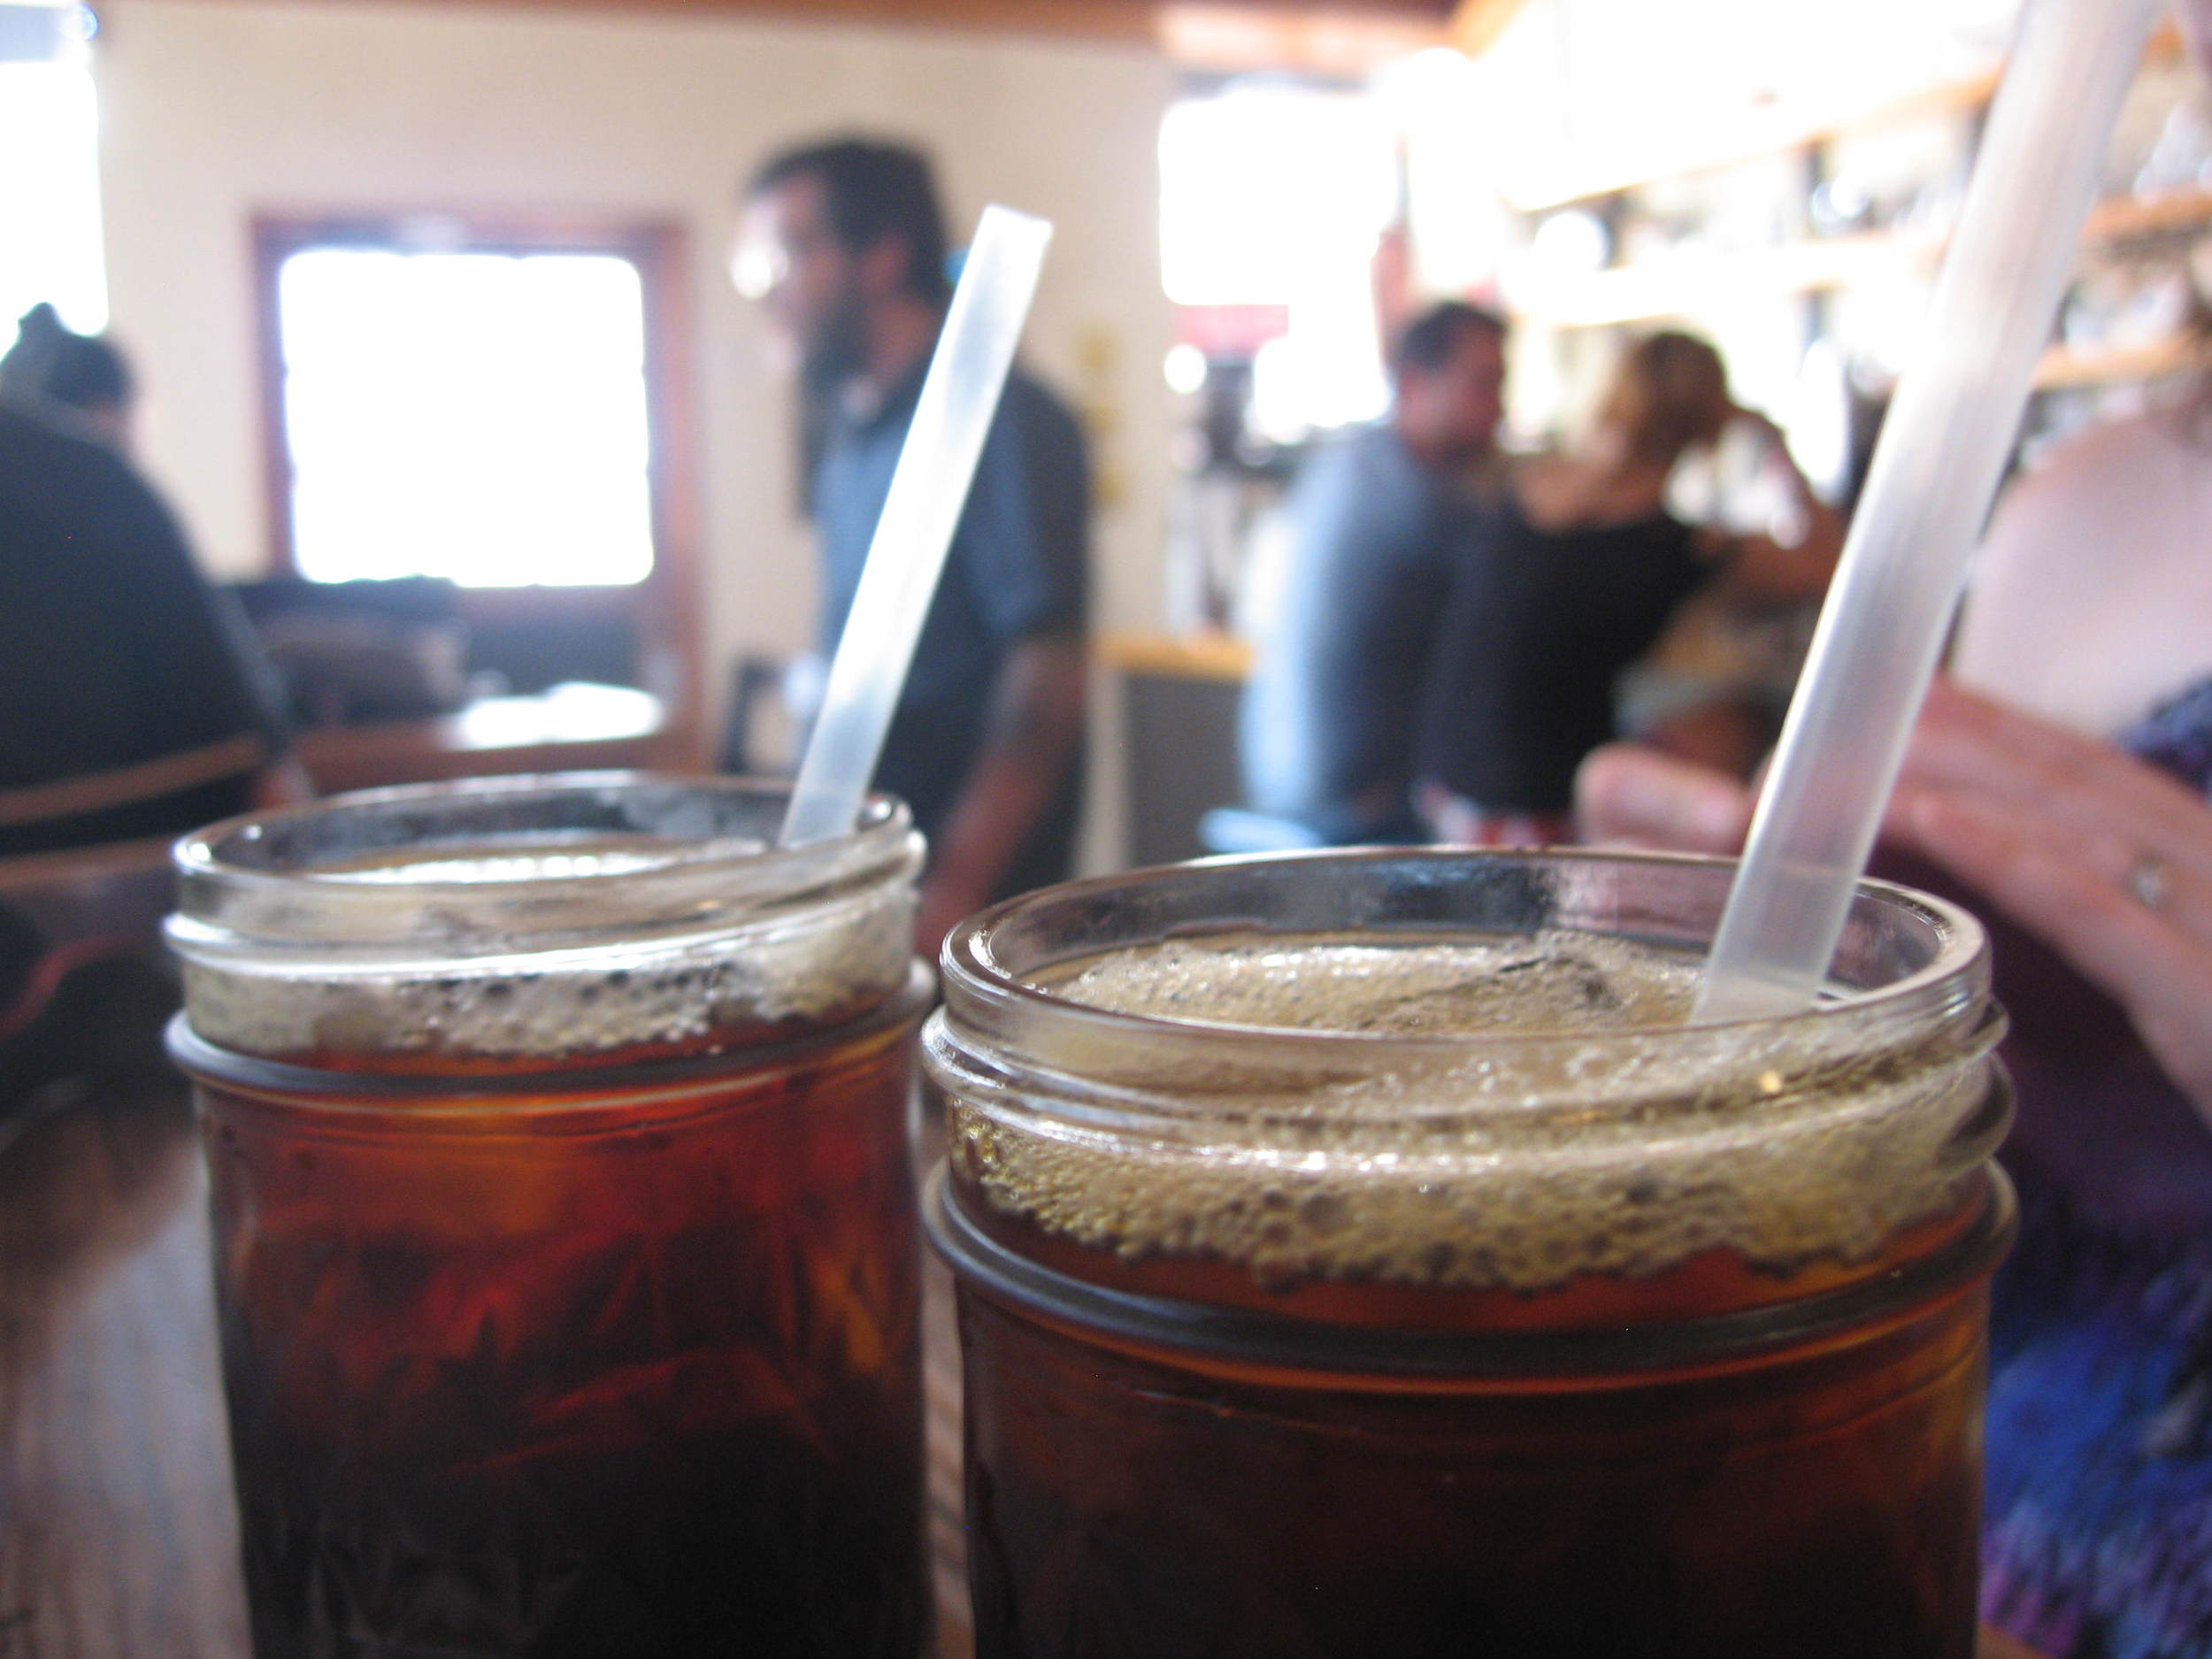 Iced coffees at Frank's